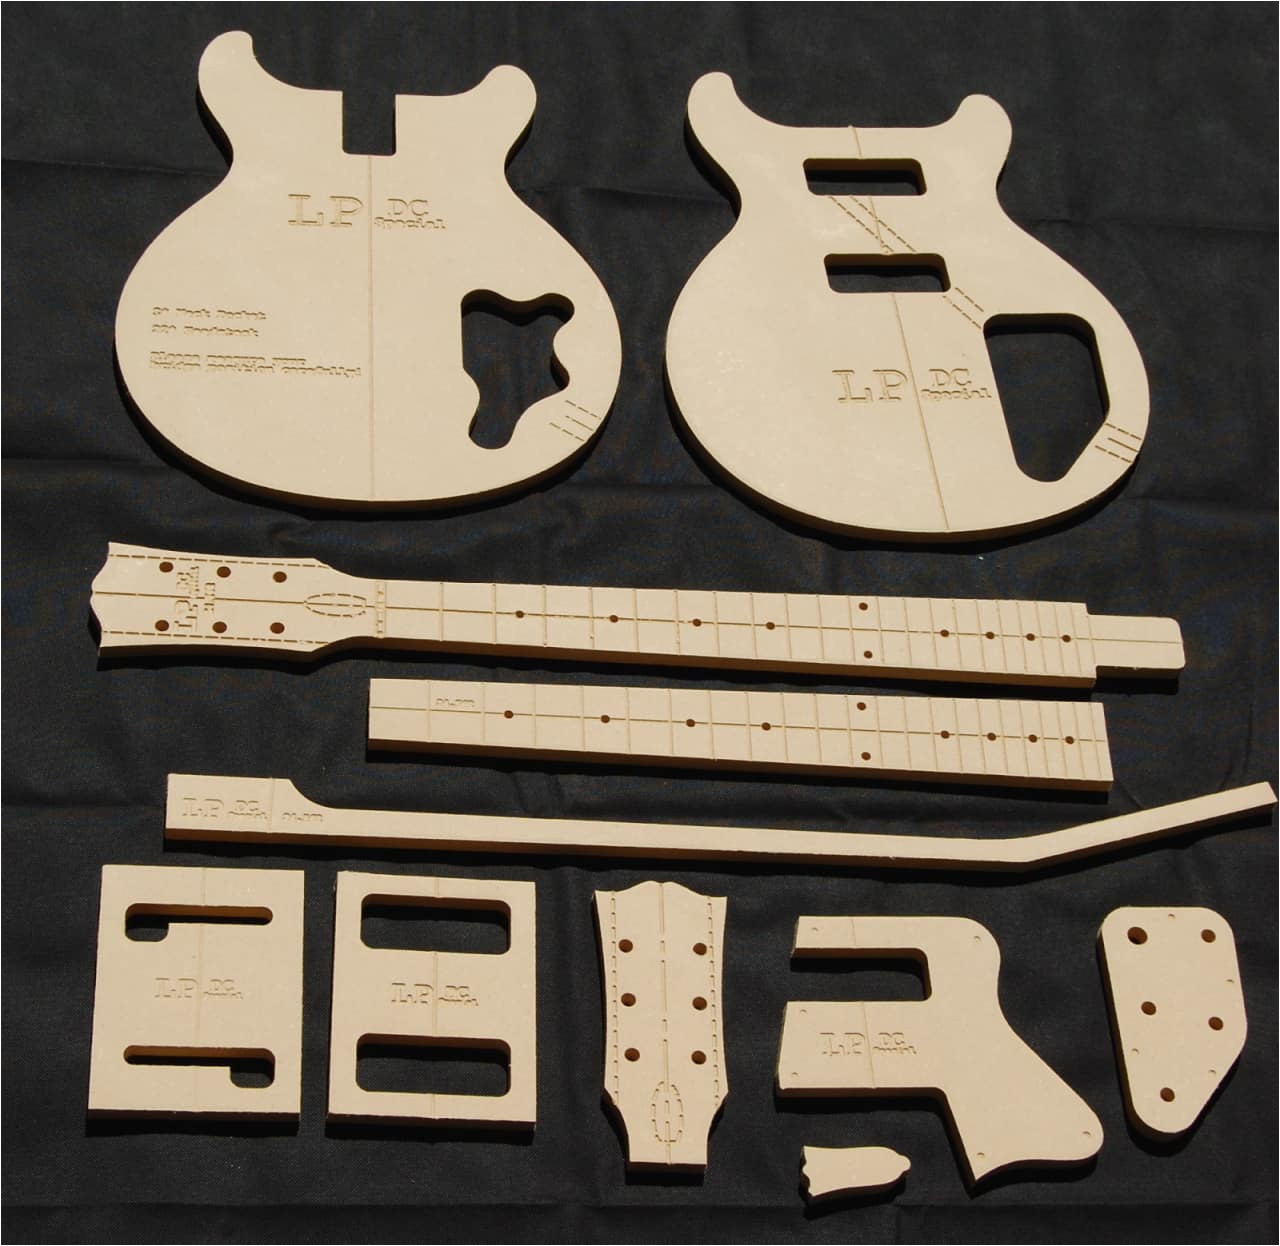 2816595 lp dc special guitar router template set 1 2 mdf cnc luthier building tools